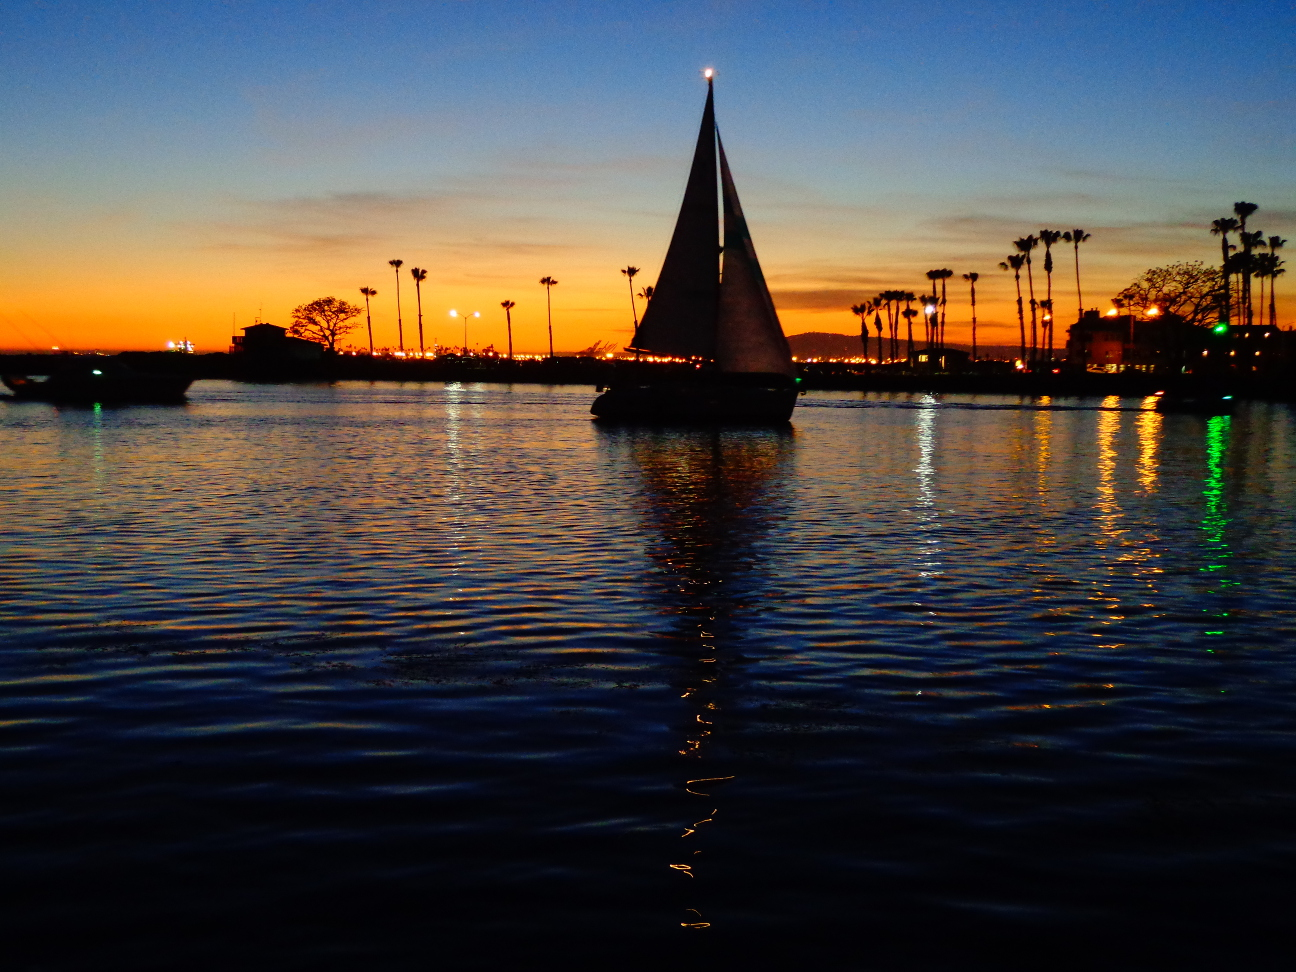 Sailing home - Alamitos Bay